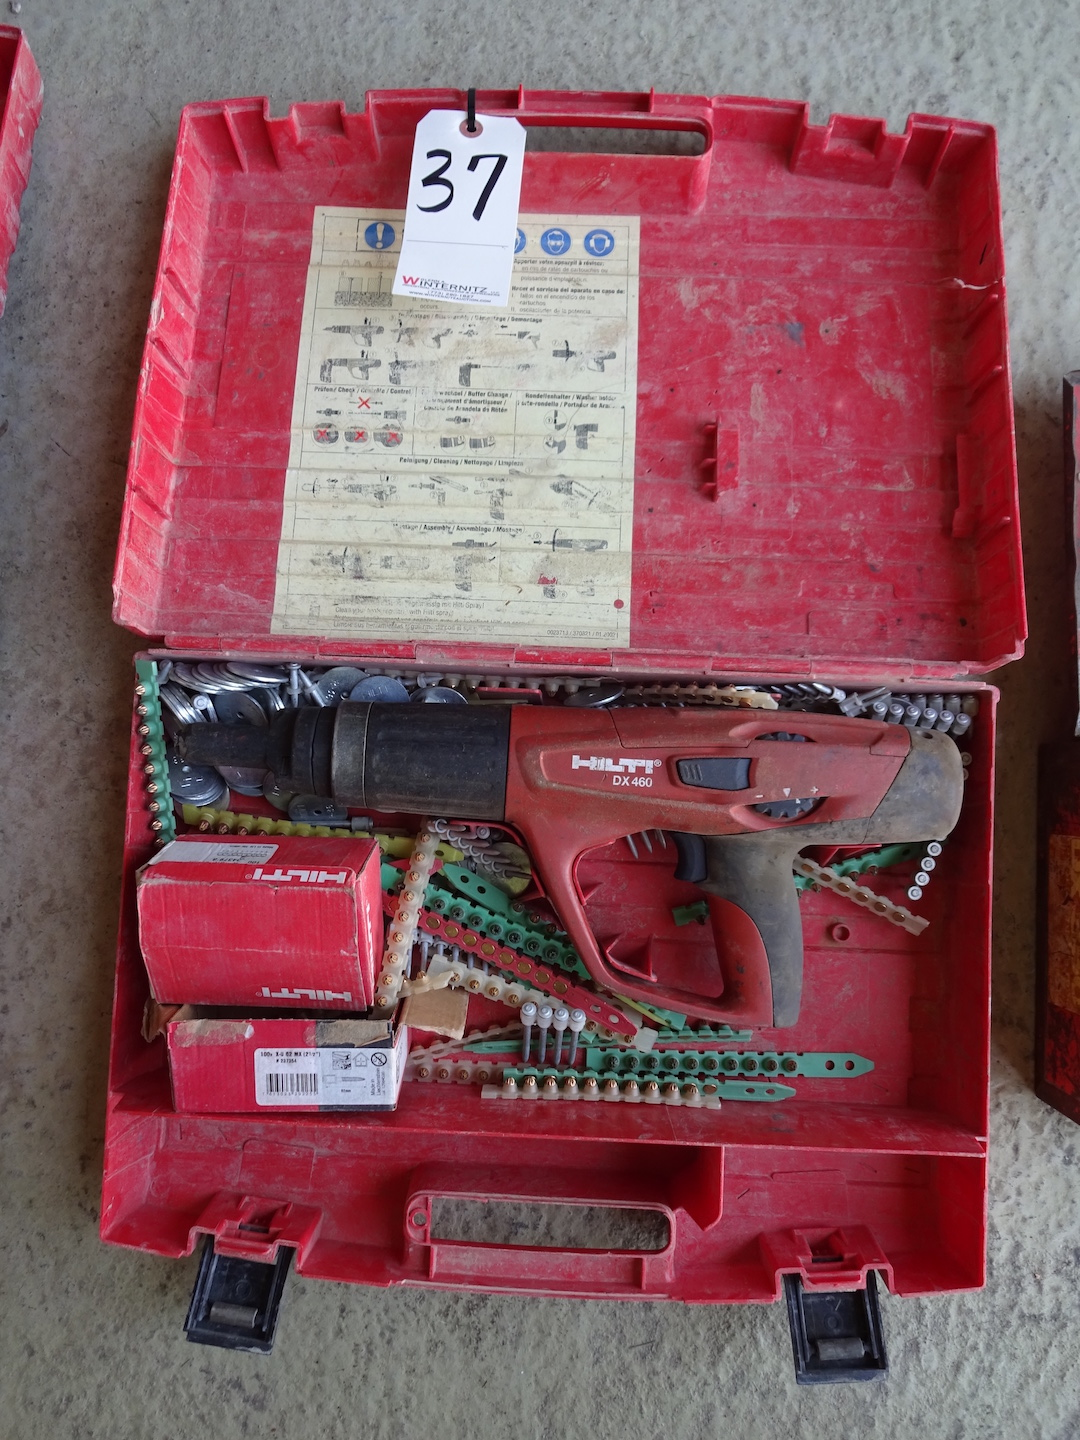 Lot 37 - HILTI DX 460 POWDER ACTUATED FASTENER WITH CASE